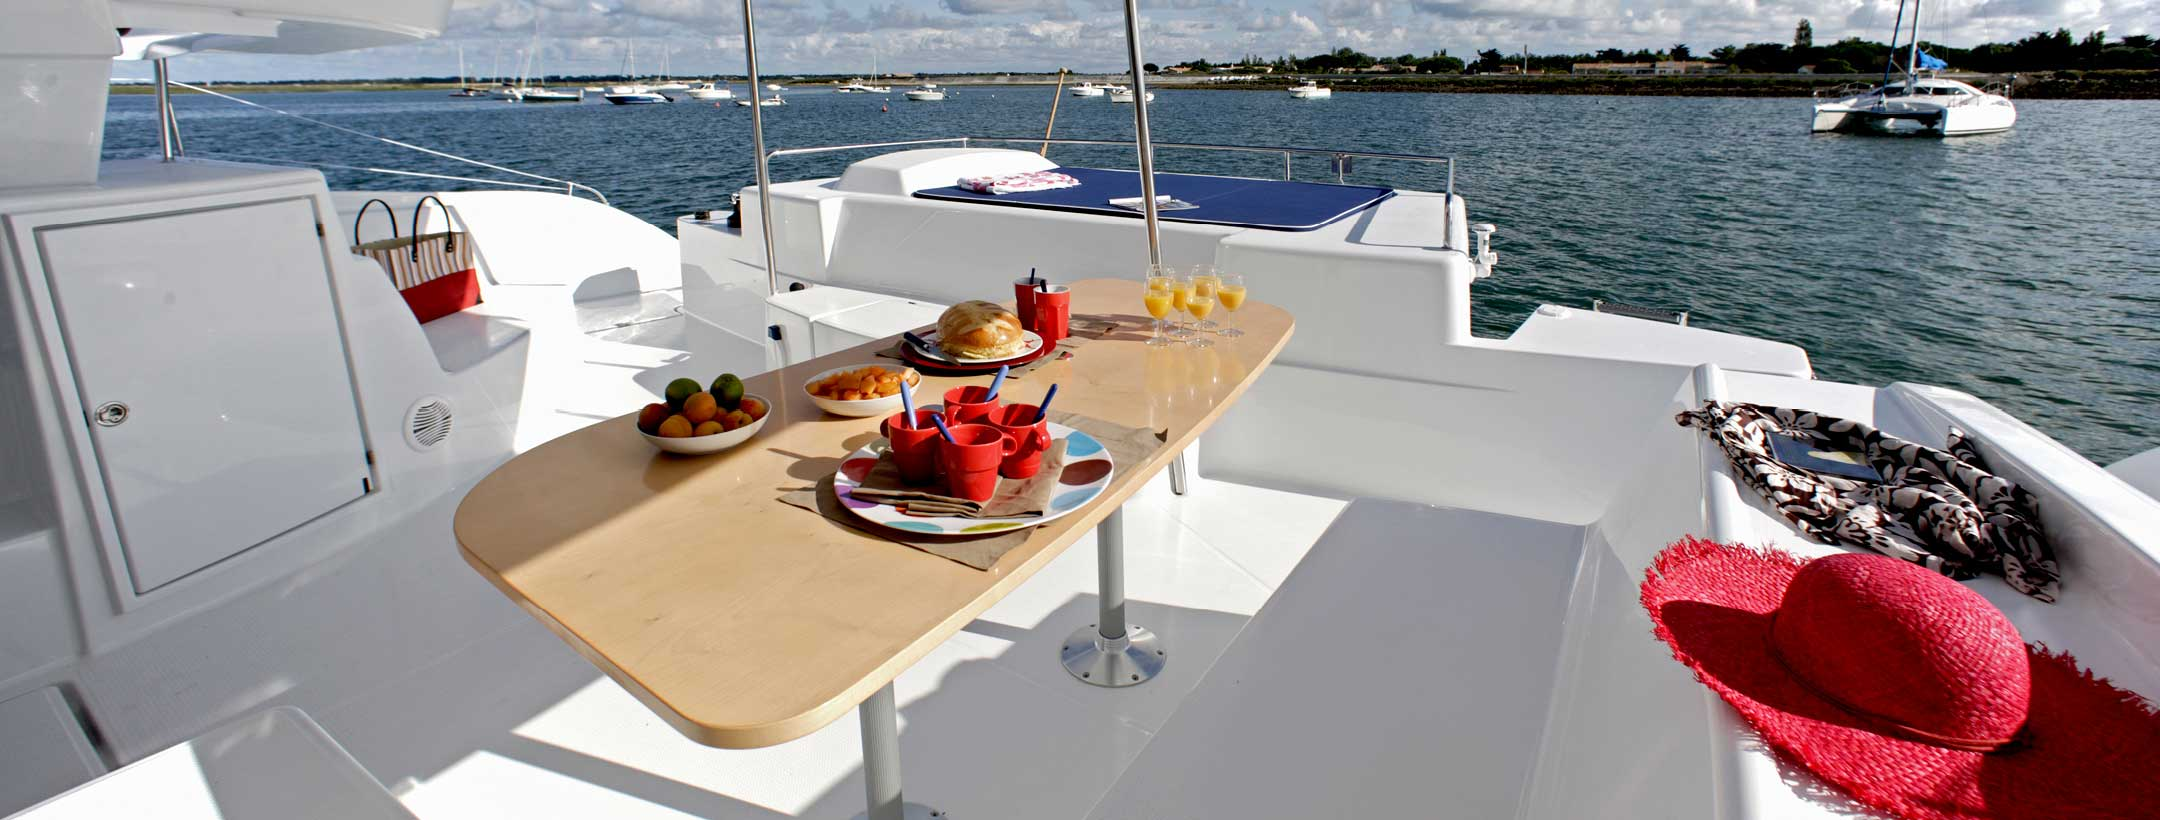 TradeWinds 50 Cruising Class Yacht outdoor dining area